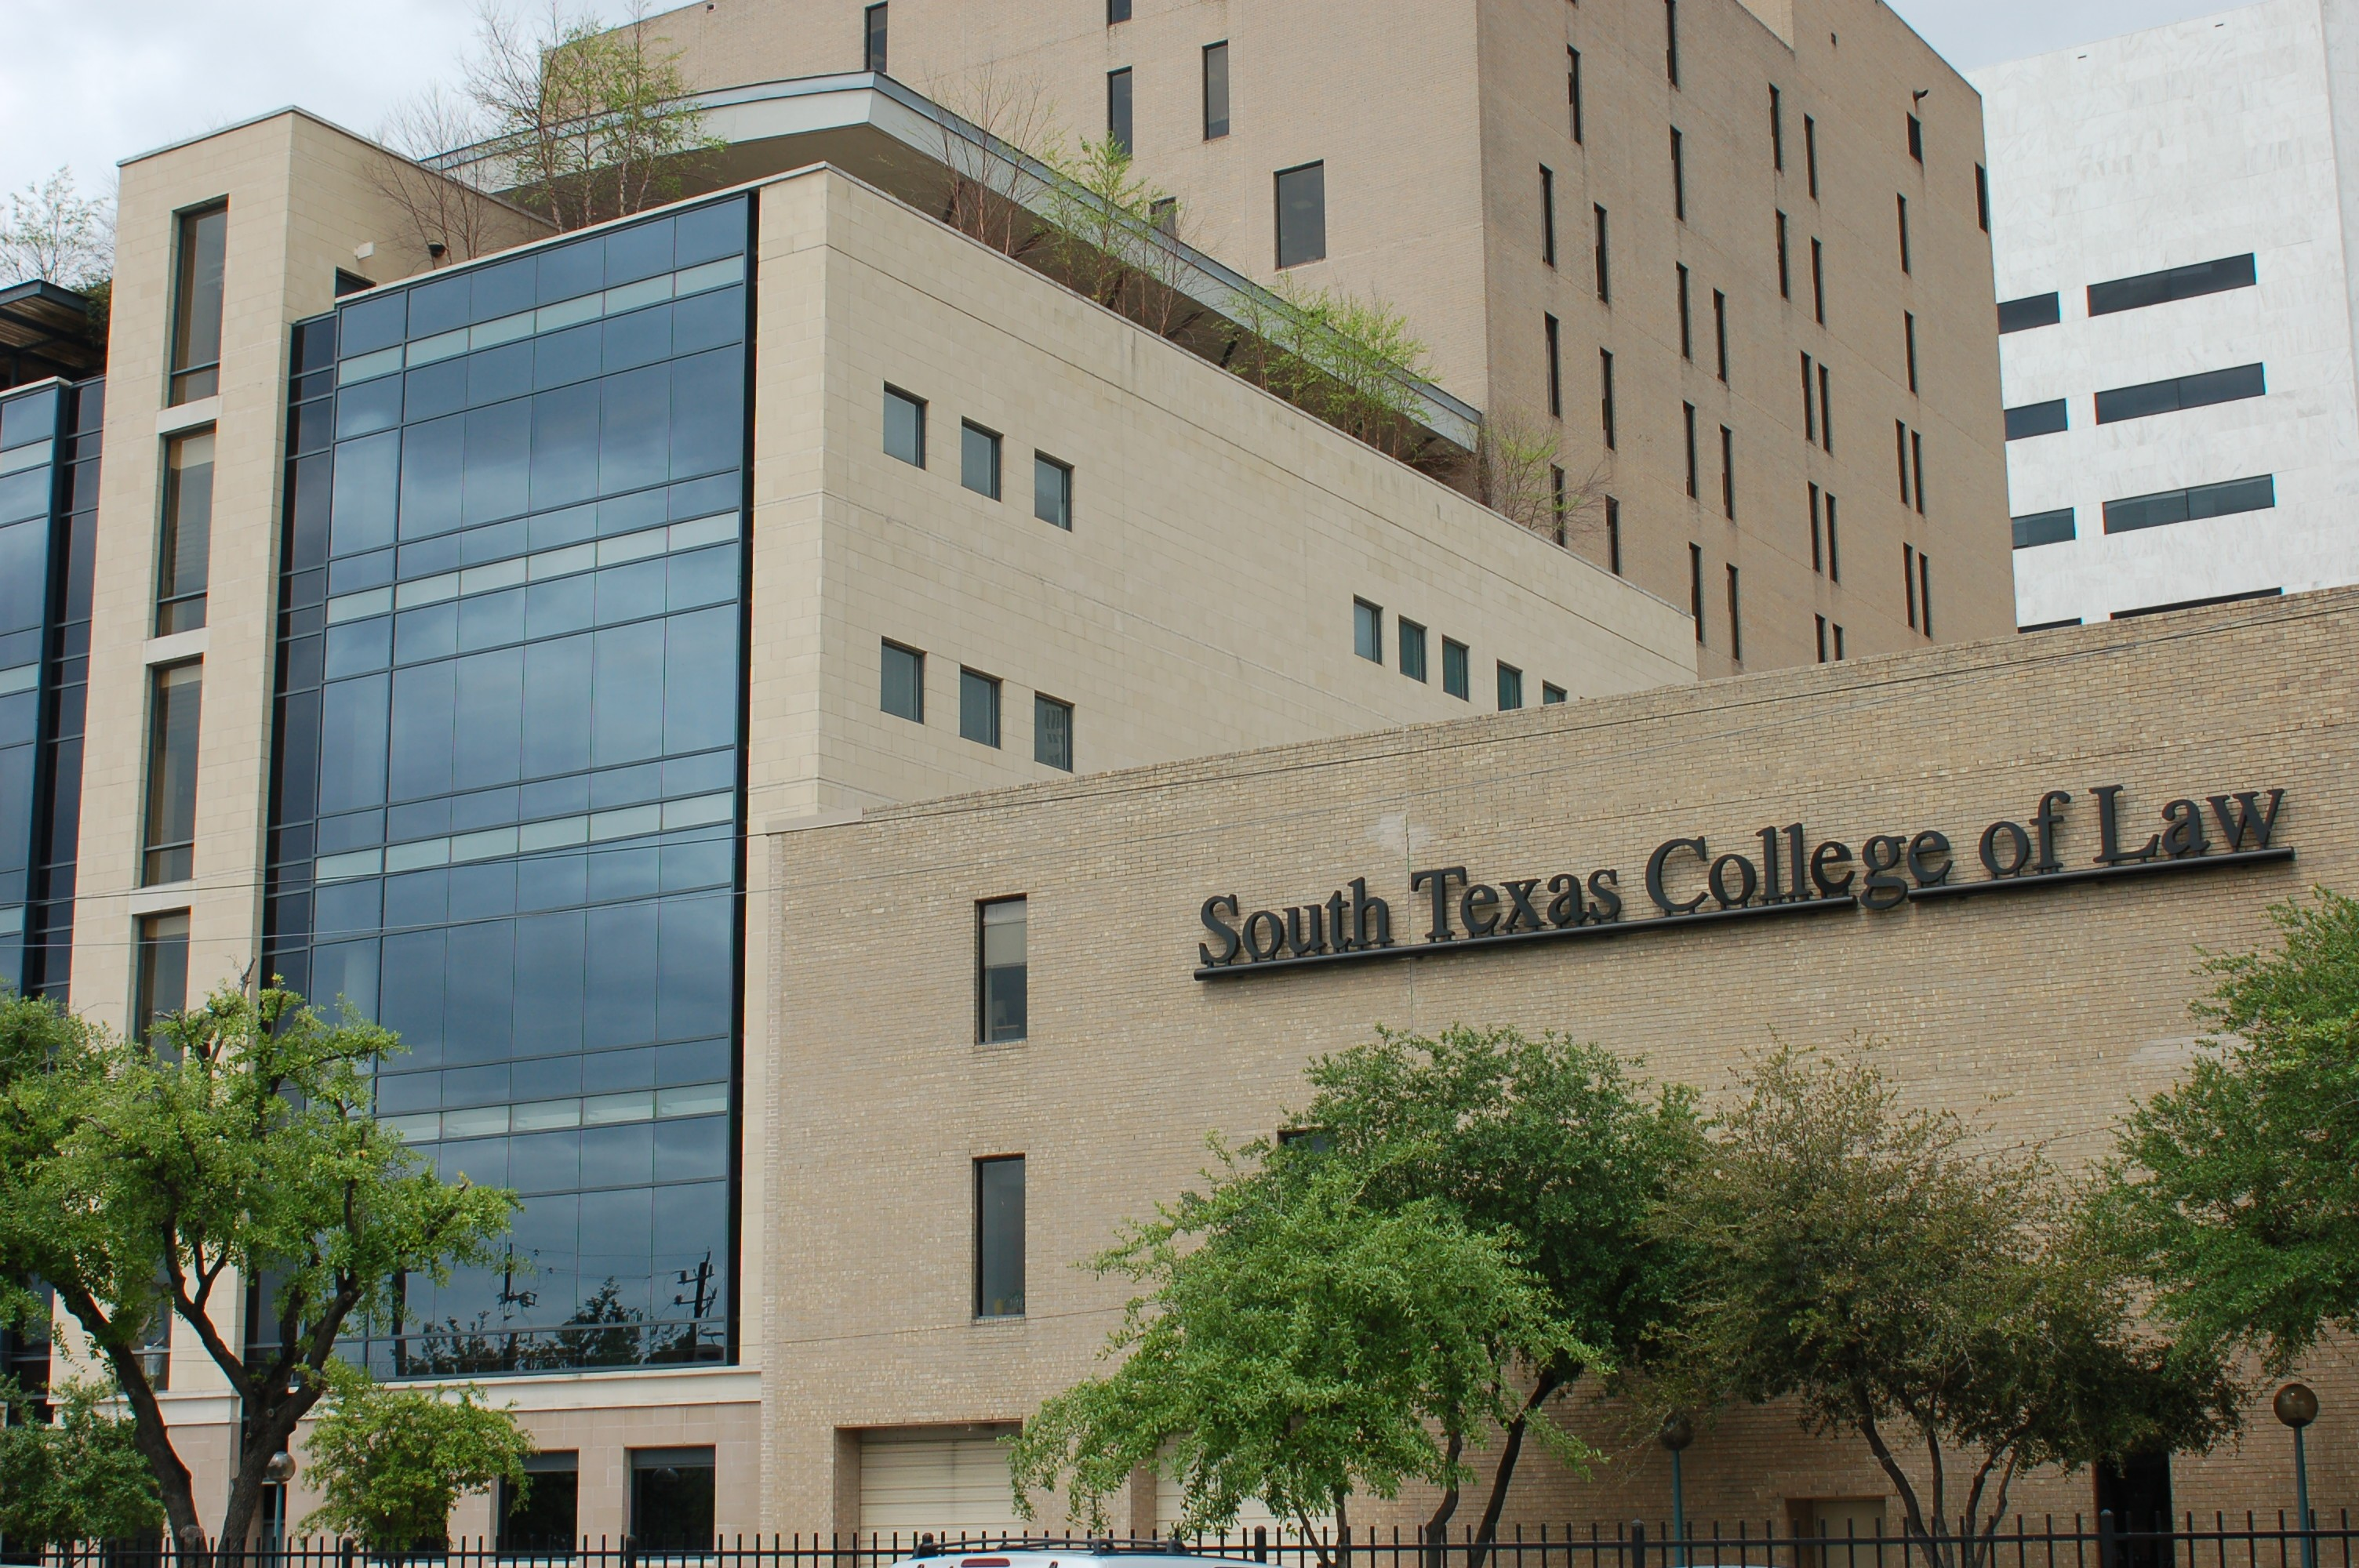 South Texas College Campus Map.South Texas College Of Law Wikipedia